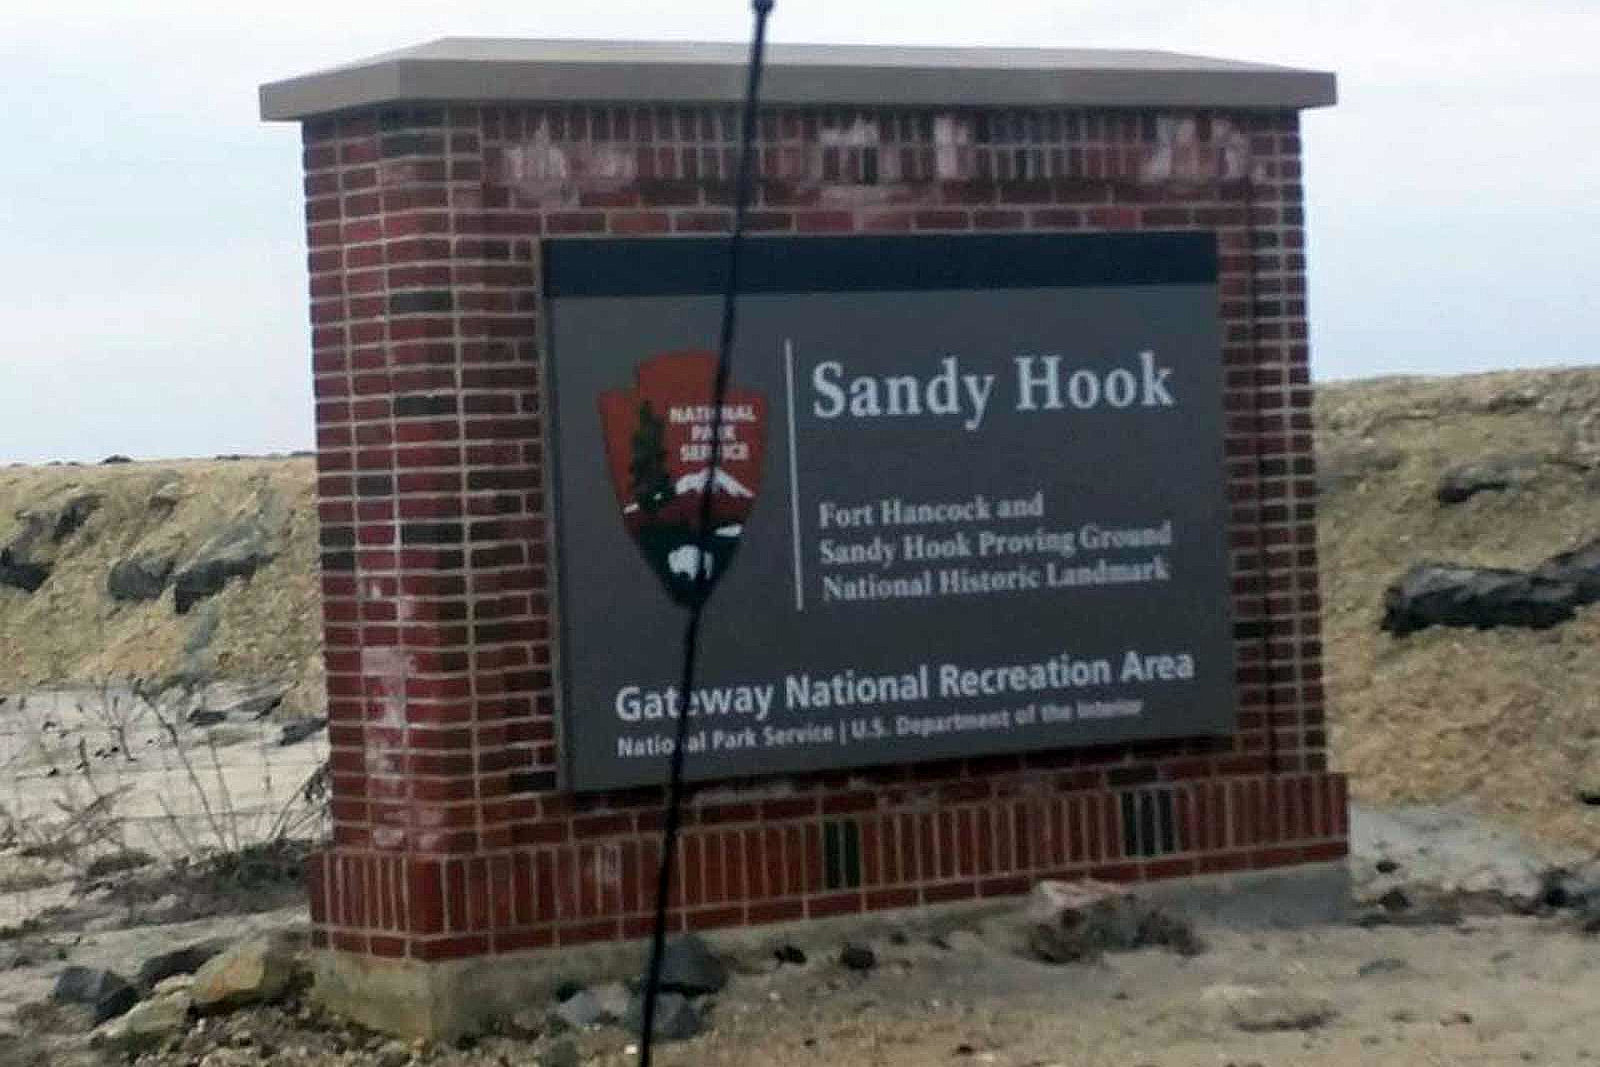 17-year-old swimmer dies after Sandy Hook, NJ beach rescue